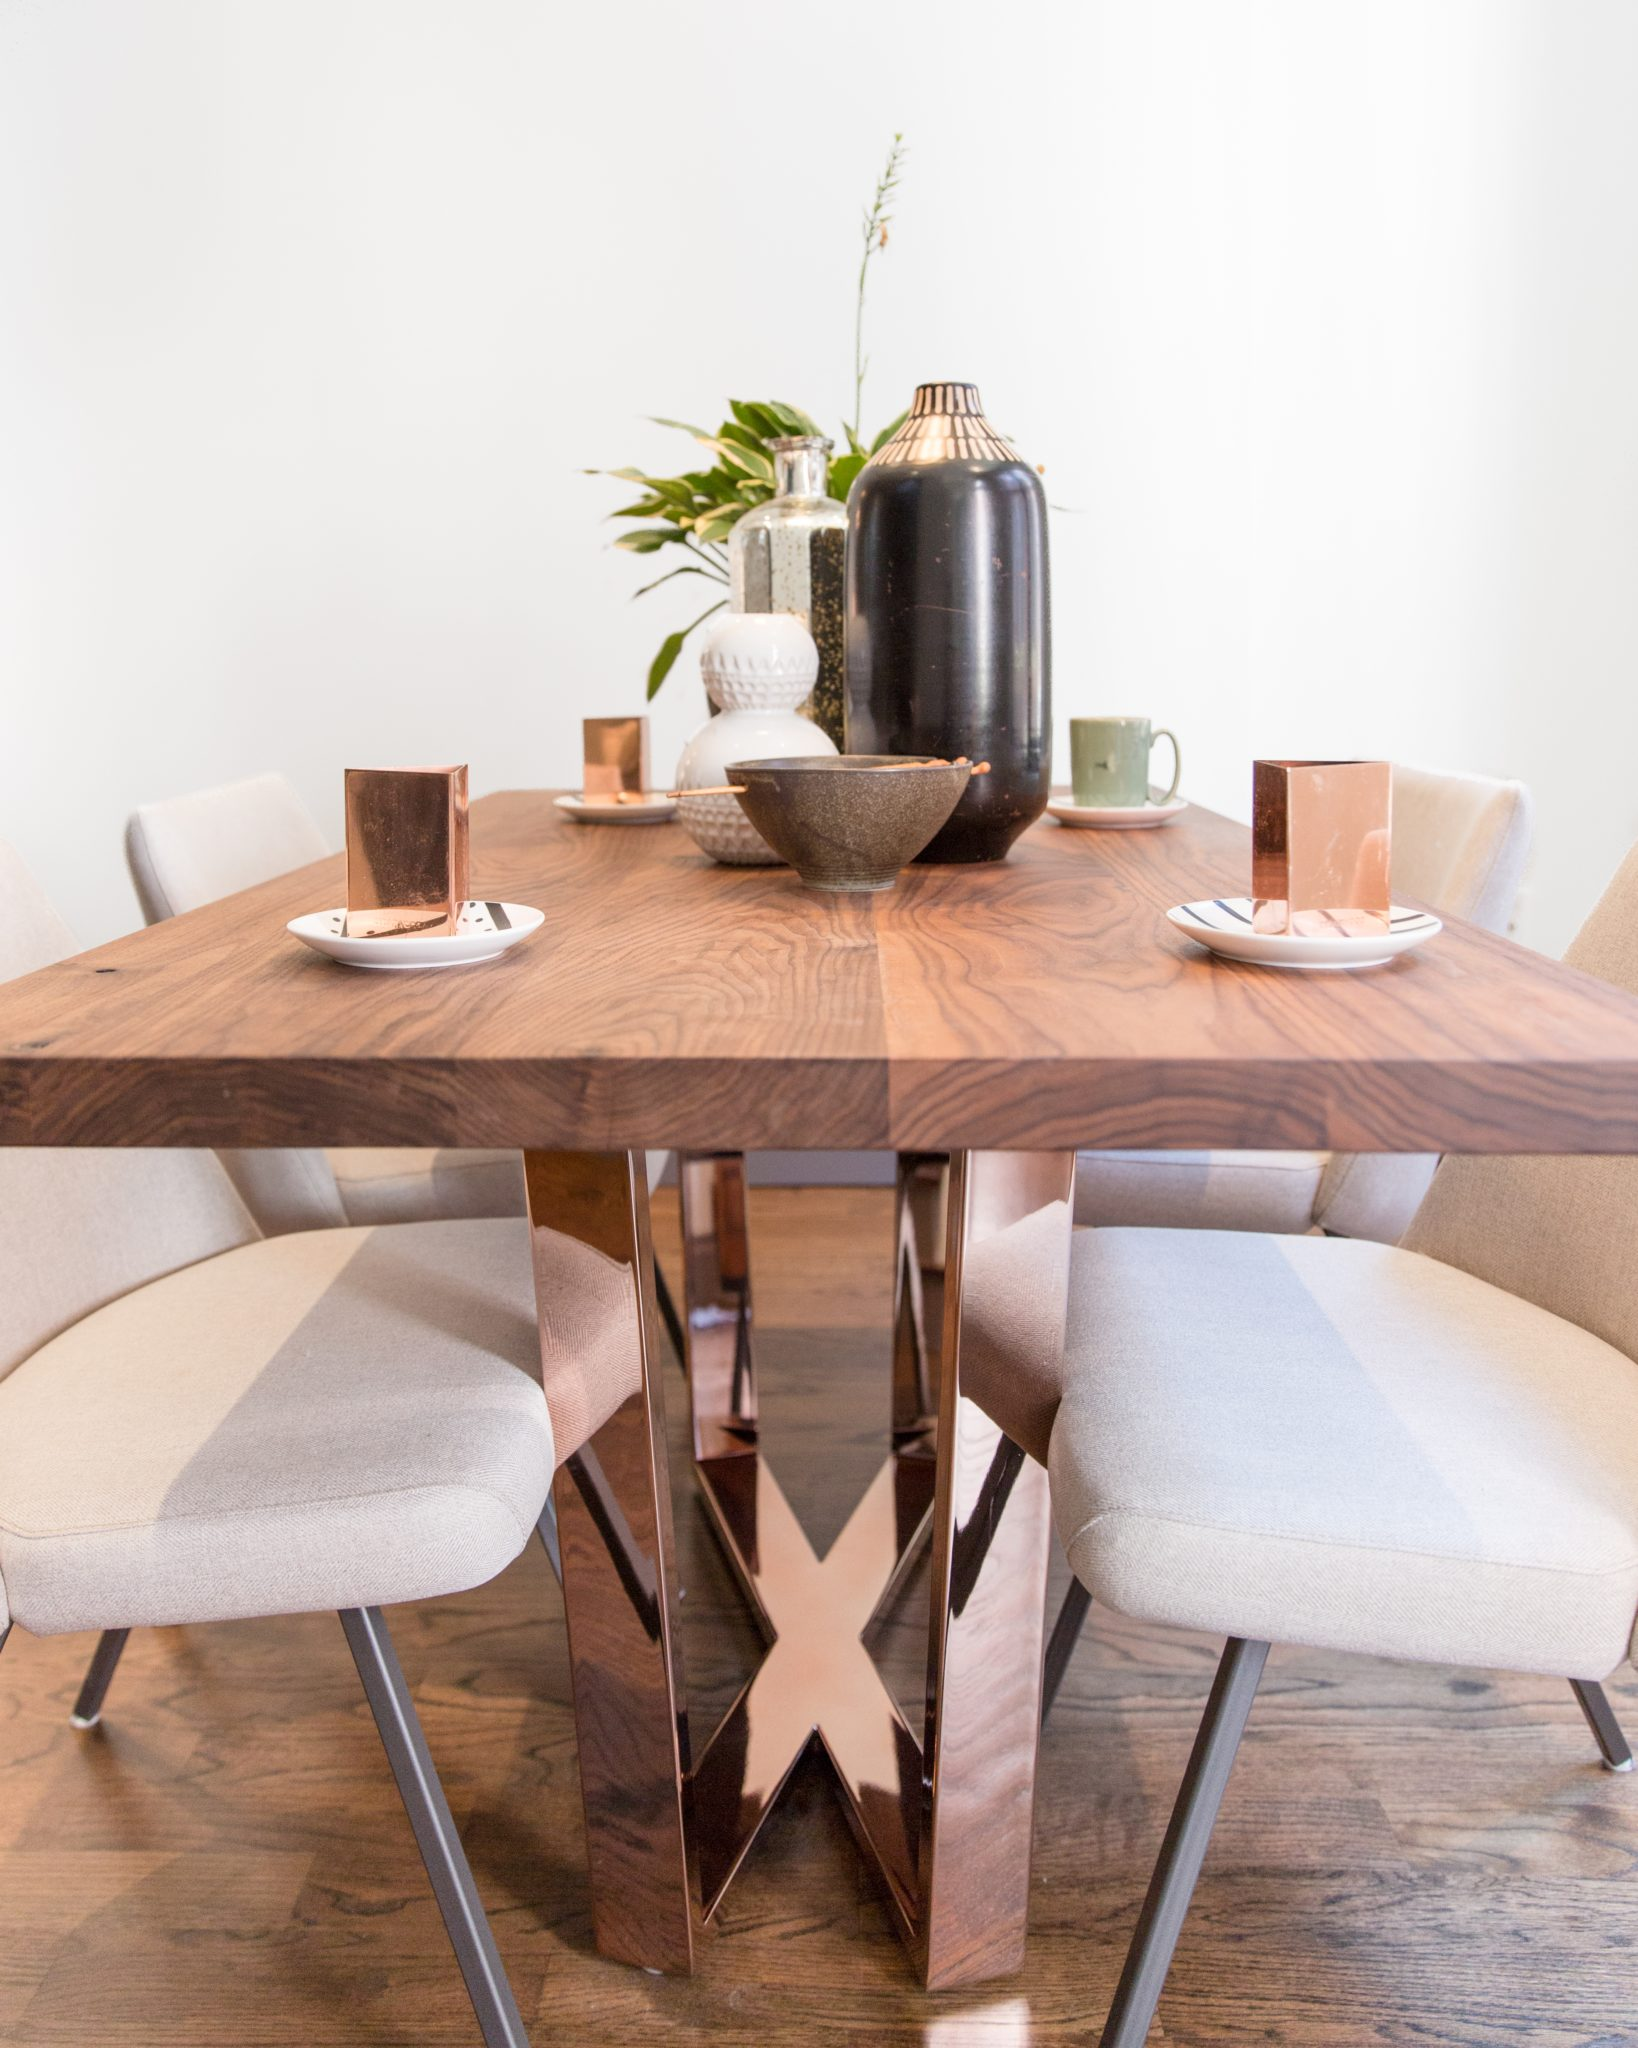 Custom dining table detail by designs by human.